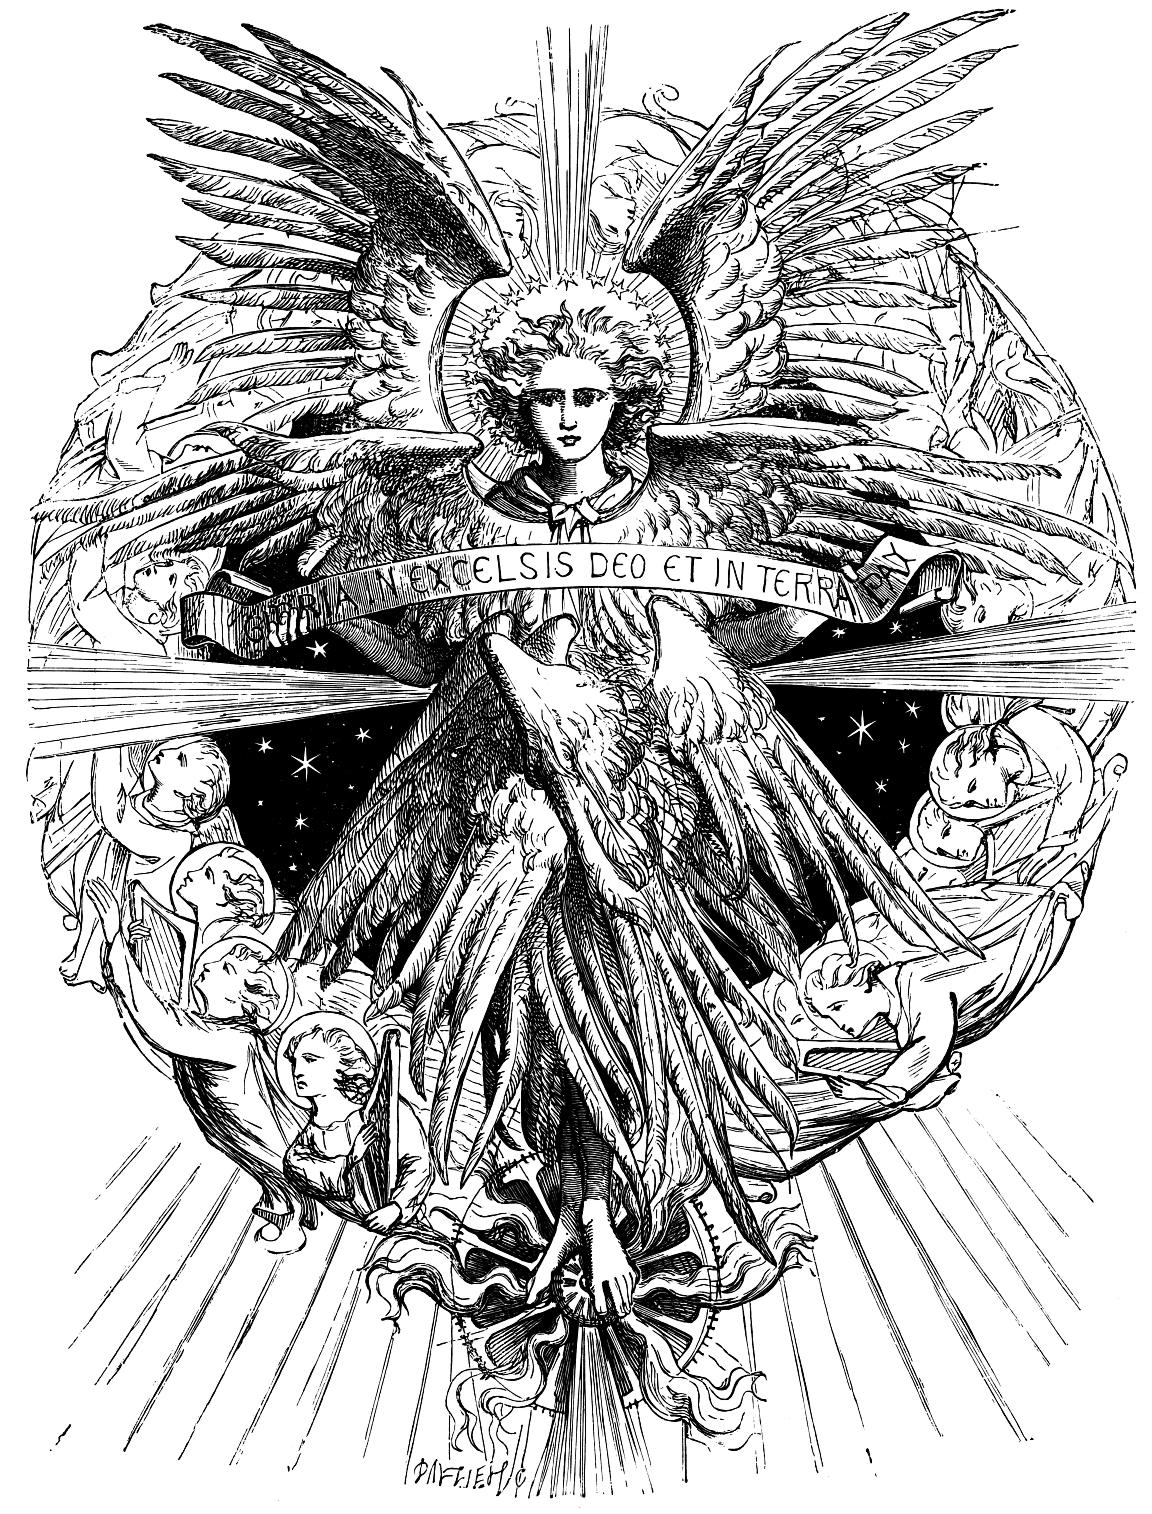 Line Art Wikipedia : Gloria in excelsis deo wikipedia